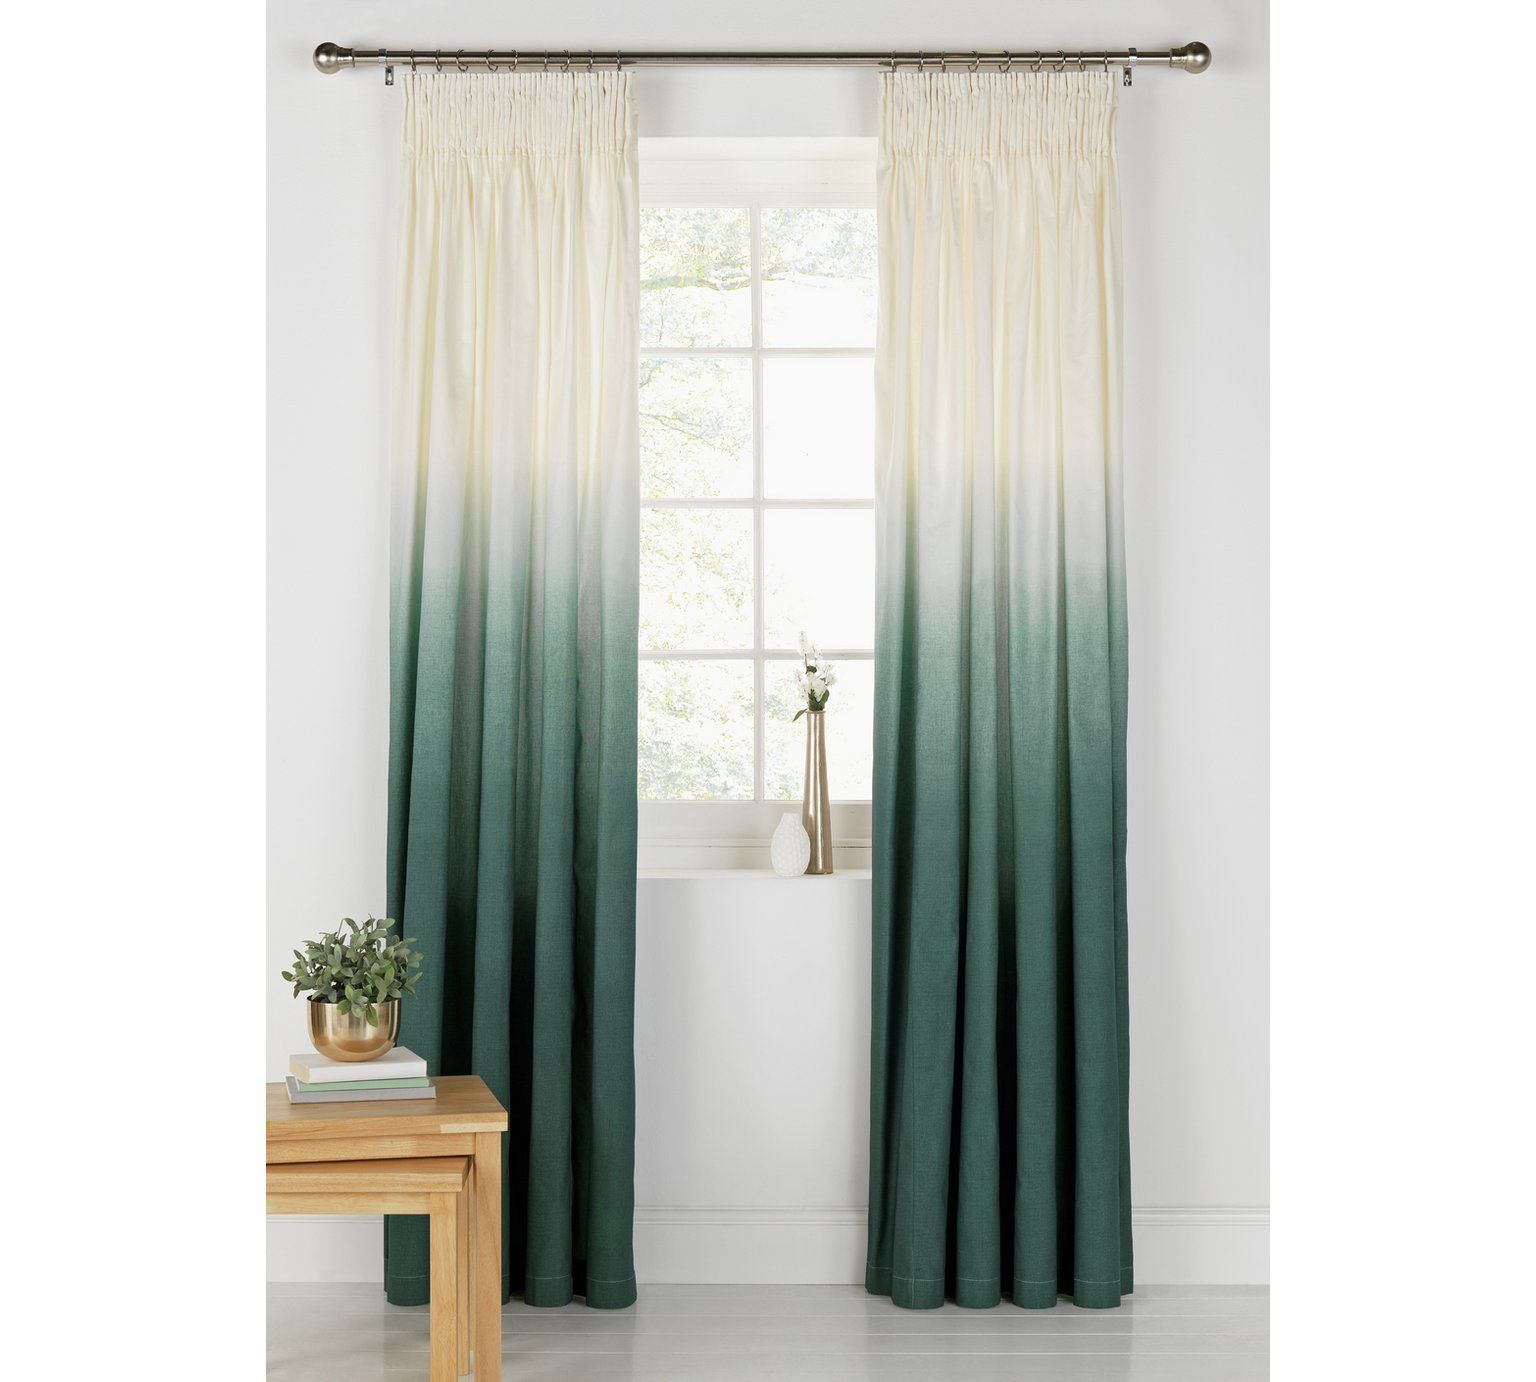 Argos Blinds And Curtains